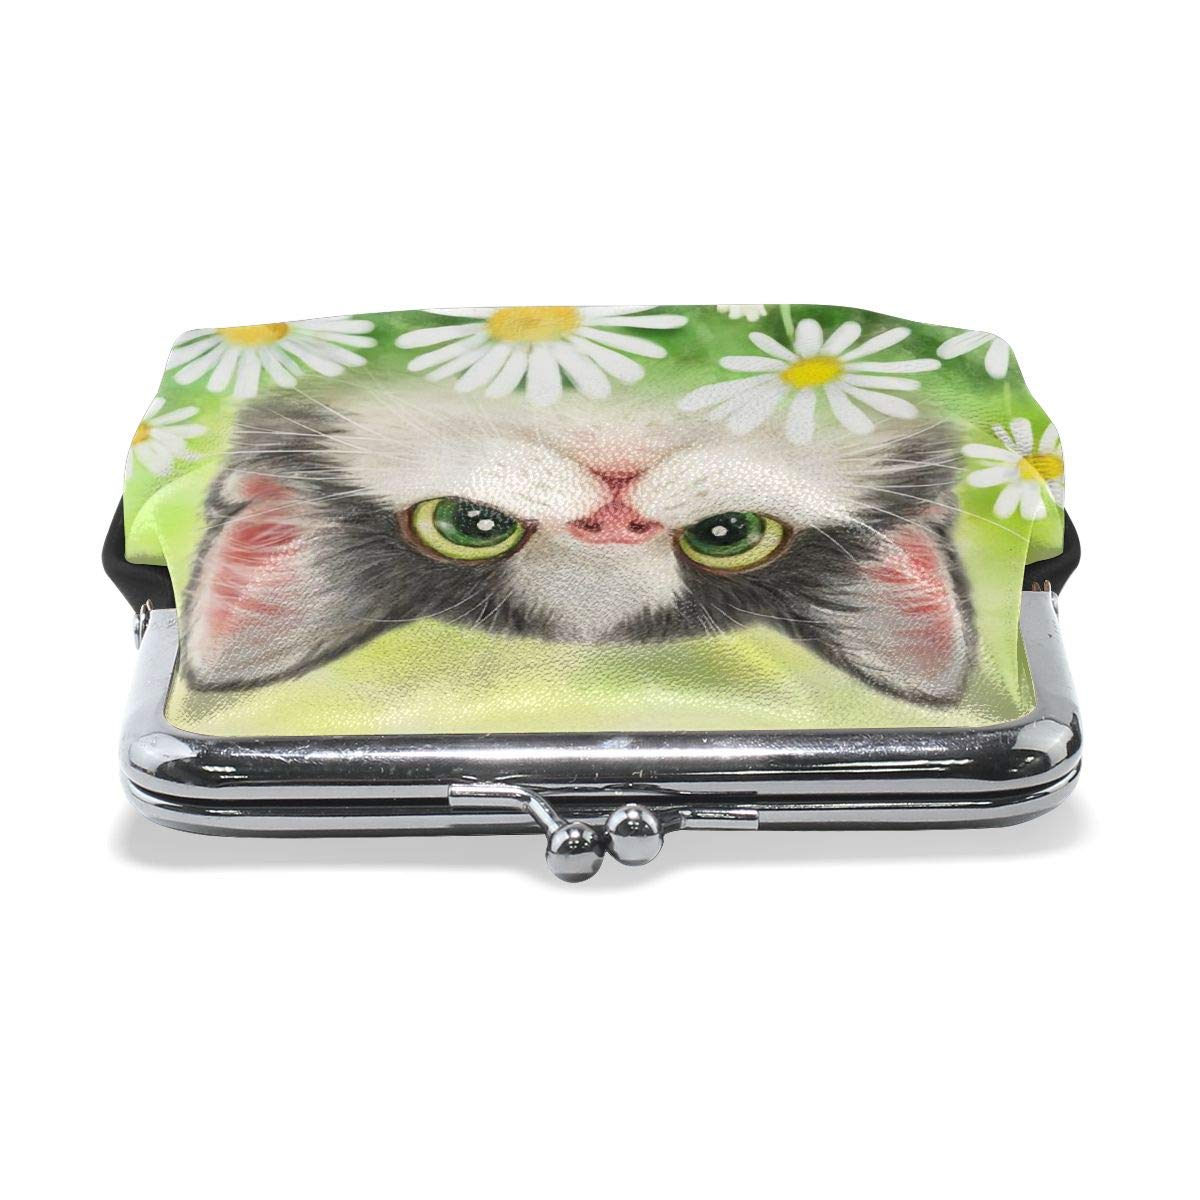 Lovely Cat Baby White Daisy Cluster Pets Vintage Pouch Girl Kiss-lock Change Purse Wallets Buckle Leather Coin Purses Key Woman Printed